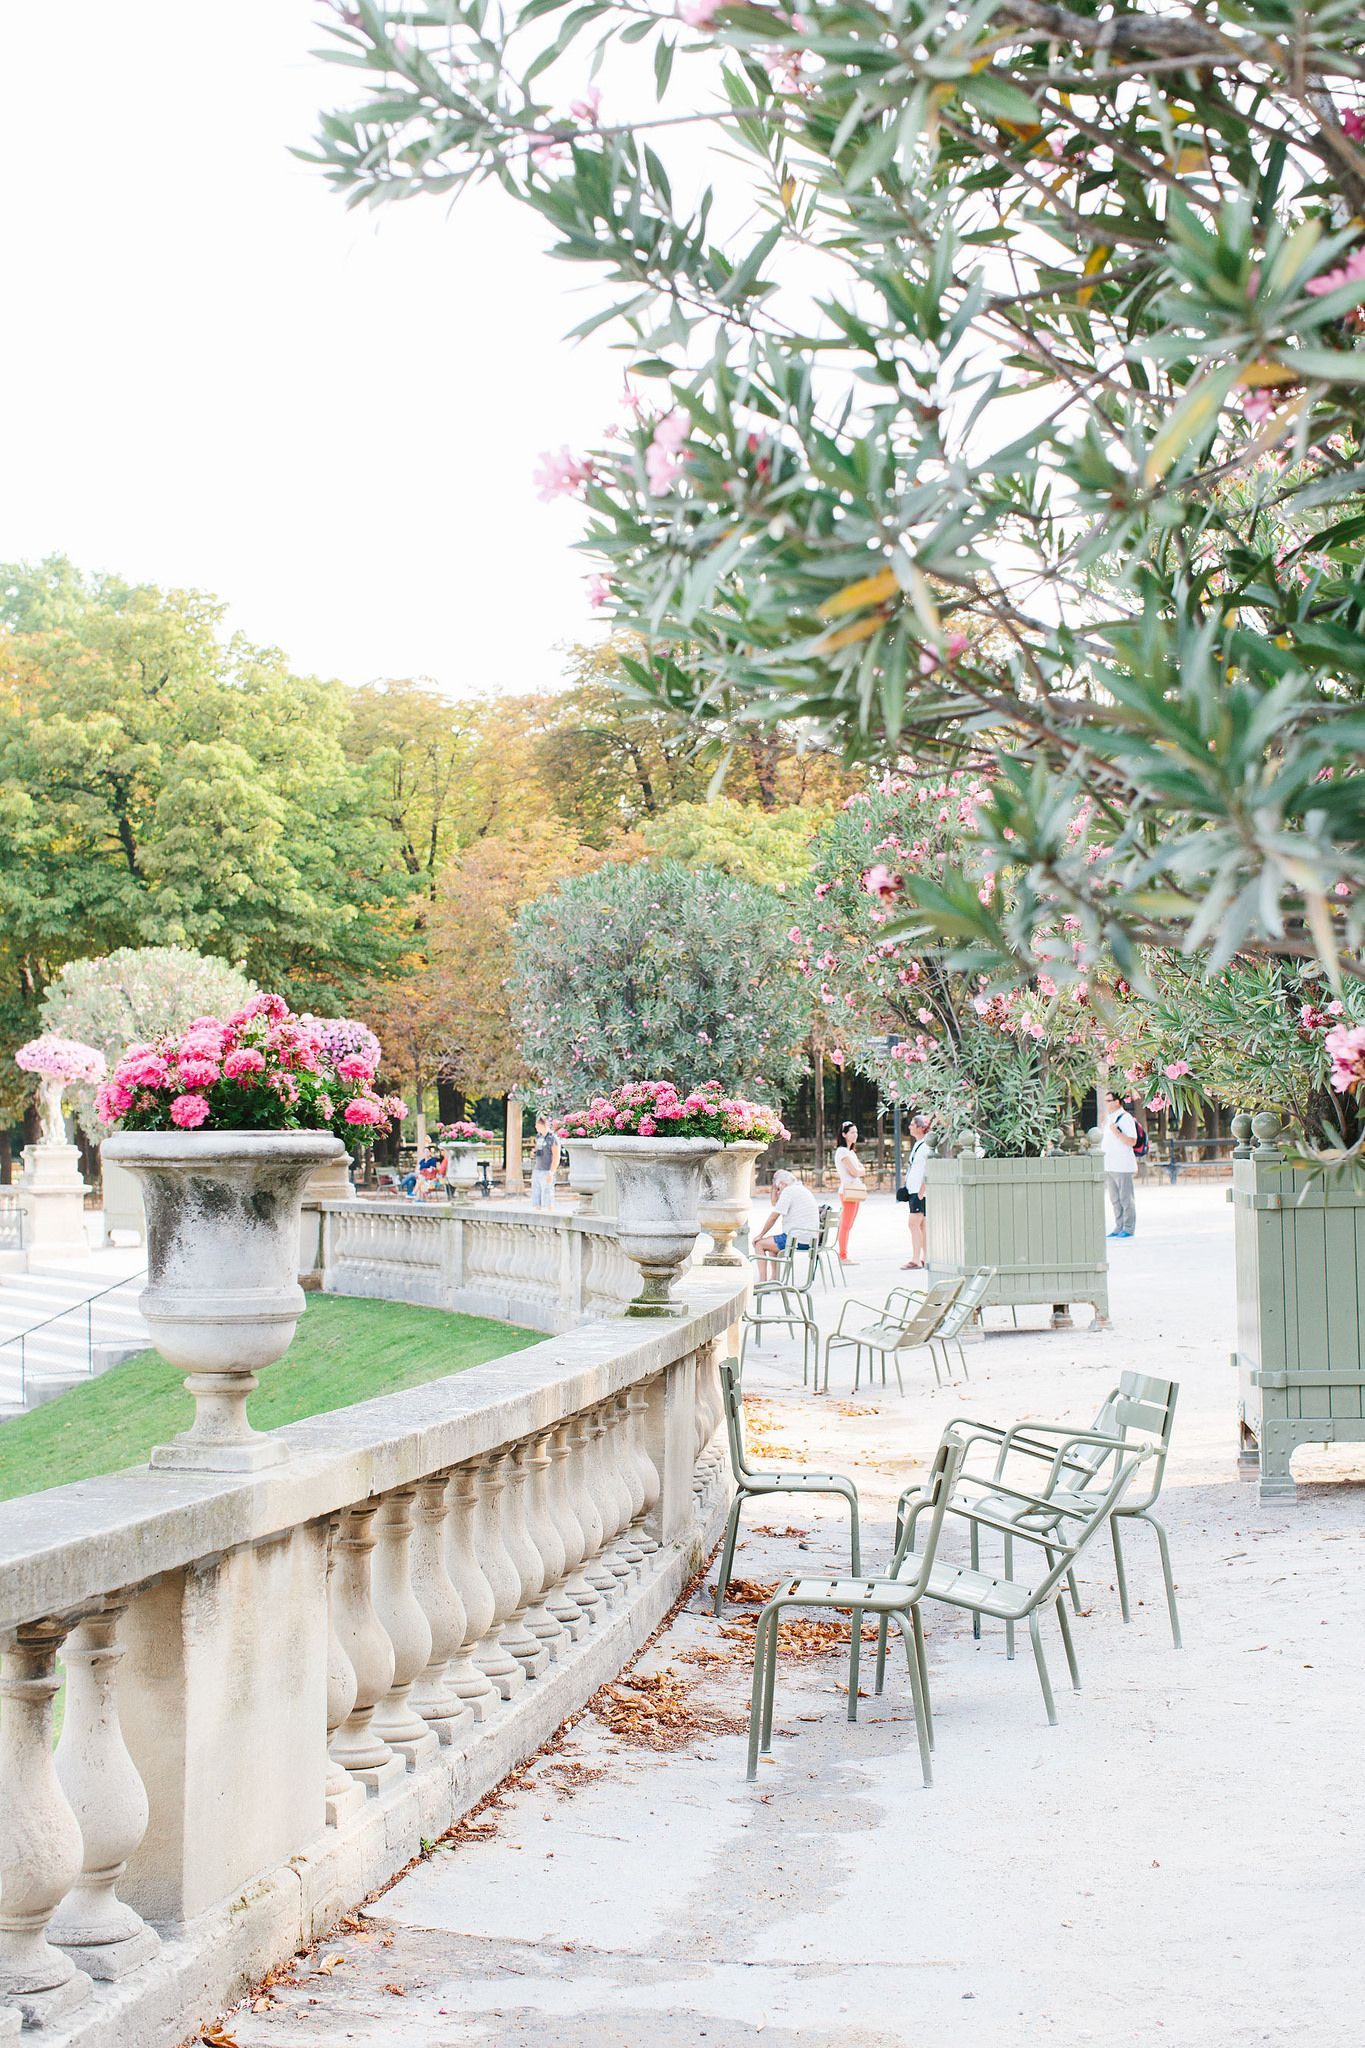 Jardin Du Luxembourg Jardin Du Luxembourg Jardin Du Luxembourg